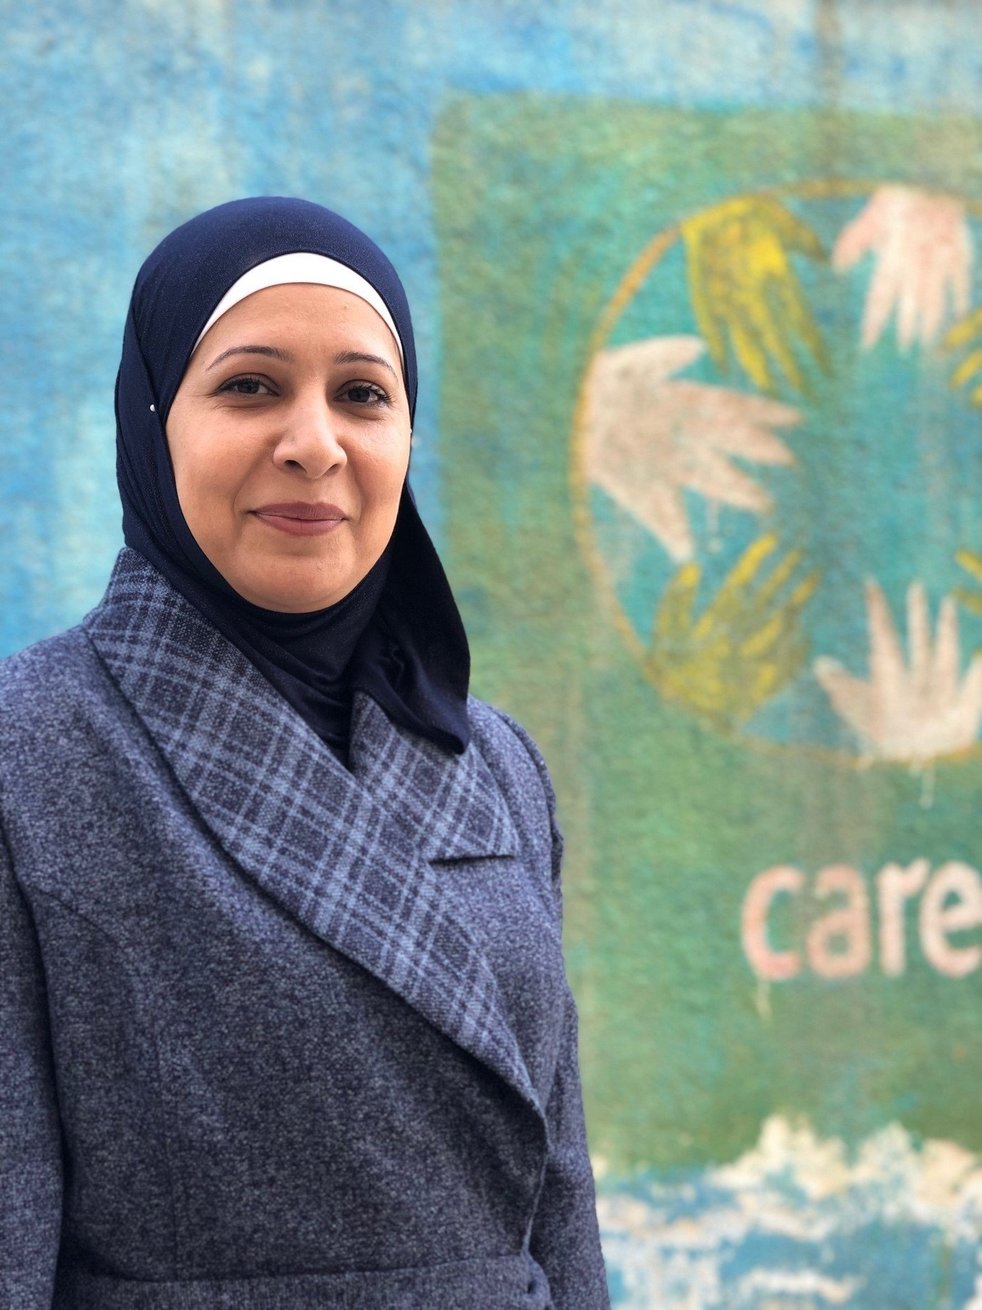 """<p style=""""margin-left:0in;margin-right:0in""""><span style=""""font-size:12pt"""">Emiline, 39, is a married Syrian mother of three. When she came from Syria to Jordan in 2012 with her husband and children, she found herself trapped inside four walls. She was too afraid to leave her home, and wouldn't let her children leave either. Her husband couldn't find work and they had no source of income. This turned their household into a place where no one felt happy, or even safe. """"I became a different person; I yelled at my kids, I stopped talking to my husband, and I locked myself in a room most of the time. The walls were closing in on me,"""" explains Emiline.</span><span style=""""font-size:12pt"""">""""The first session I ever attended was at CARE, and it was about <em>Women's Rights</em>. I remember going back home and telling my husband to take us back to Syria if this was how we were going to continue living. I have rights, and I want to be able to live like everybody else. The next session I attended was about <em>Child Abuse</em>. I was heartbroken to know that my attitude and feelings were directly affecting my children.""""</span><span style=""""font-size:12pt"""">Emiline did not stop working to improve her life. Eventually she became one of the leaders at CARE's Zarqa Women Leadership Council. """"I now stand and talk to other women from a hurtful experience. I tell them that I was exactly where they are now, and show them that I'm a live example of how things improve when you are determined to be better. My husband and children are so proud of me. I'm proud of myself."""" </span></p>"""